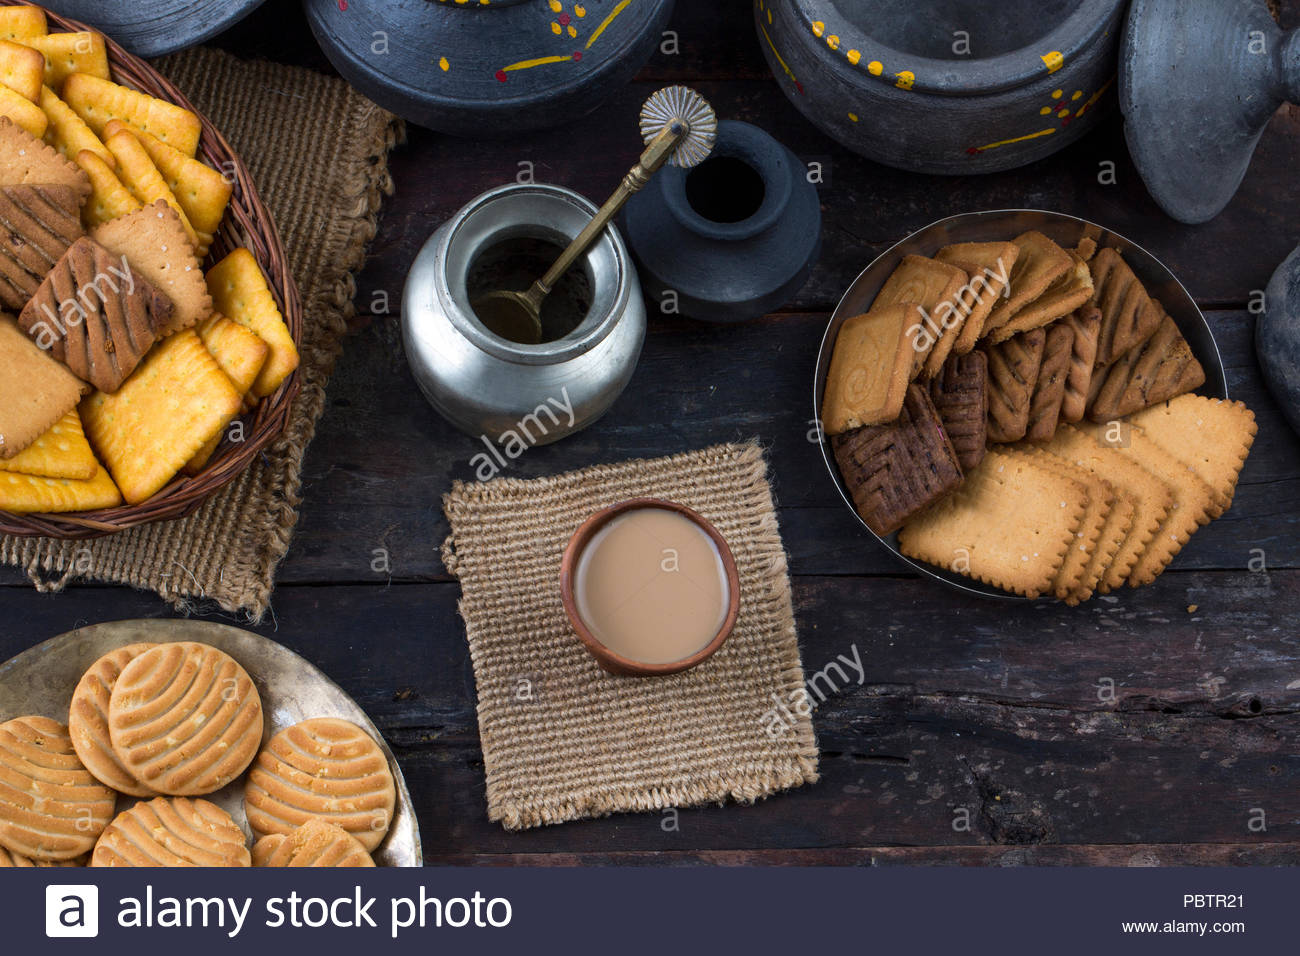 Tea with cookies or biscuits - Stock Image